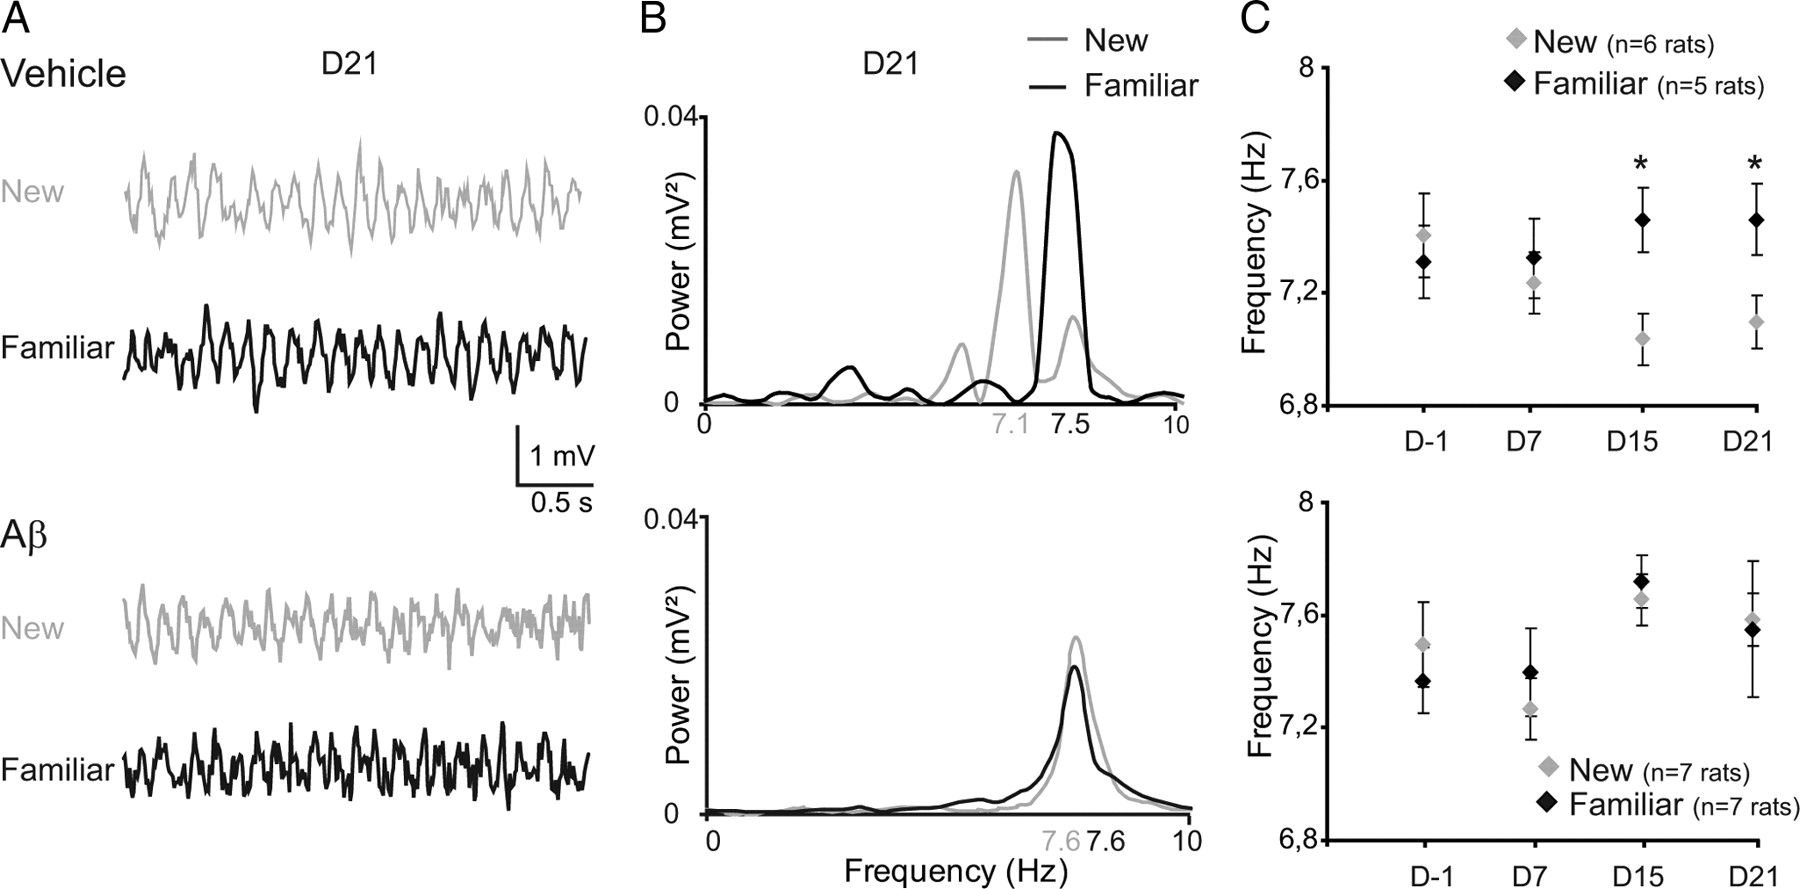 Decreased Rhythmic Gabaergic Septal Activity And Memory Associated Low Power Optical Interrupter Pdf Modulated Light Received Pl Tone Download Figure